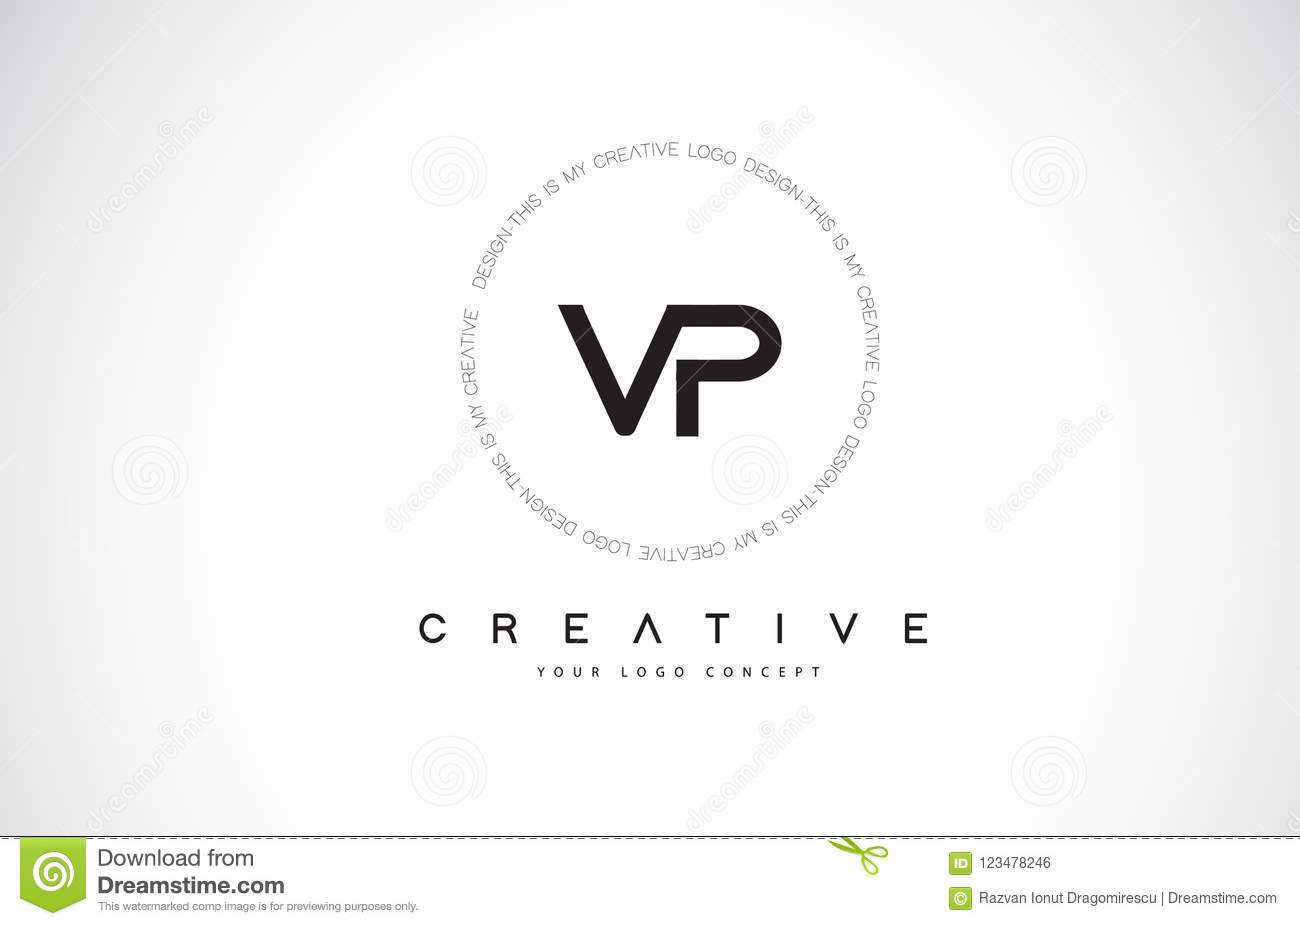 Vp V P Logo Design With Black And White Creative Text Letter Vector